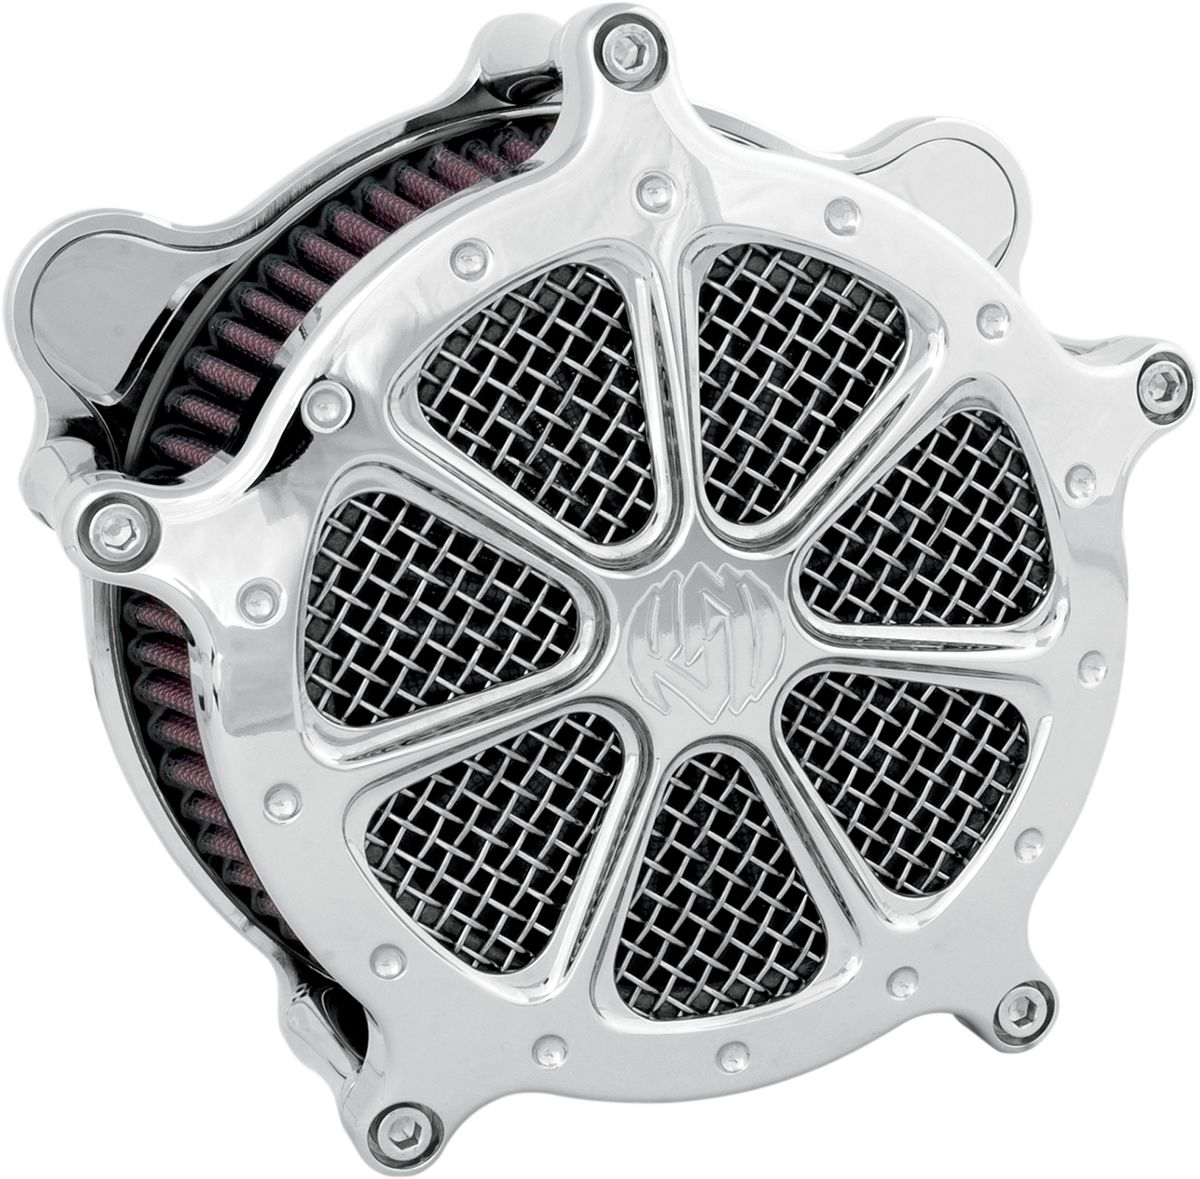 10100422 - RSD AIR CLEANER SPD7 08-16FLT